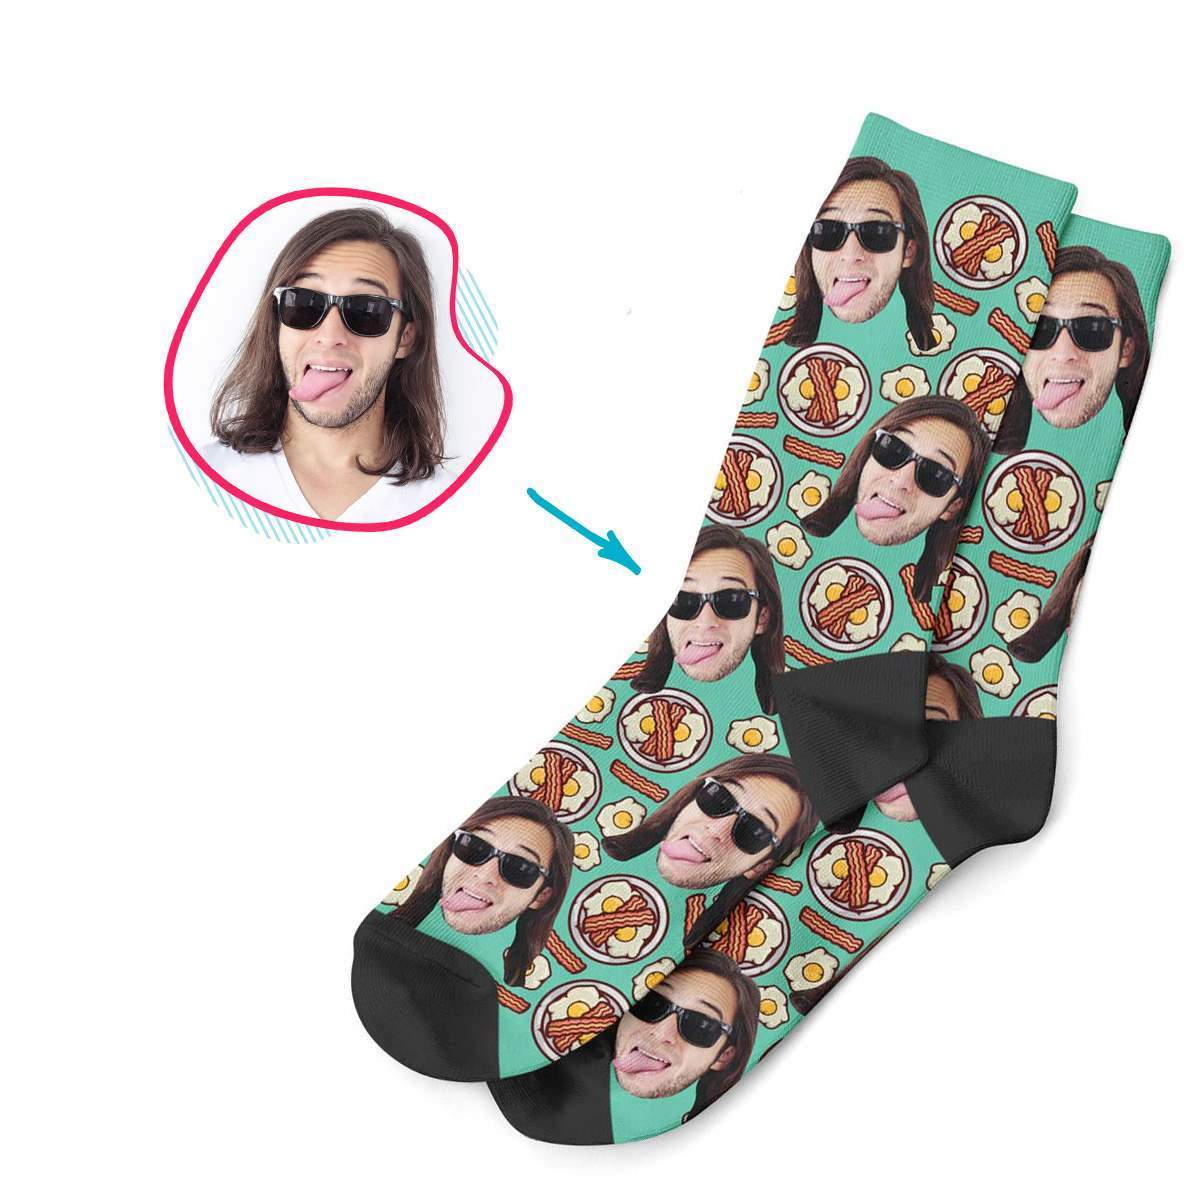 mint Bacon and Eggs socks personalized with photo of face printed on them